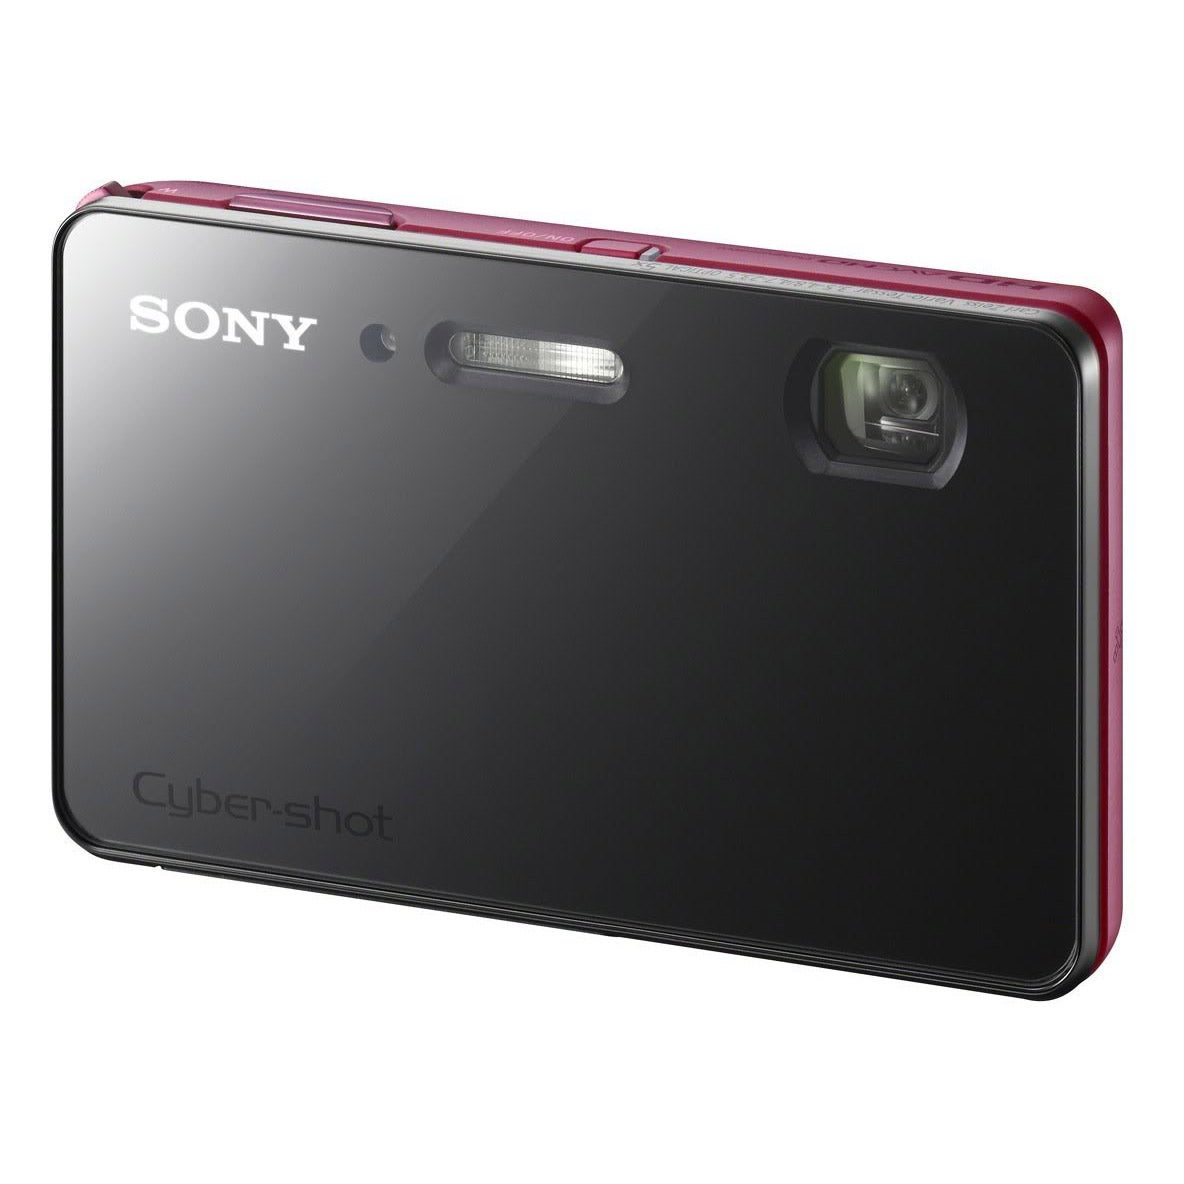 Sony Cyber-shot DSC-TX200V 18.2MP 3D Panorama Red Digital Camera